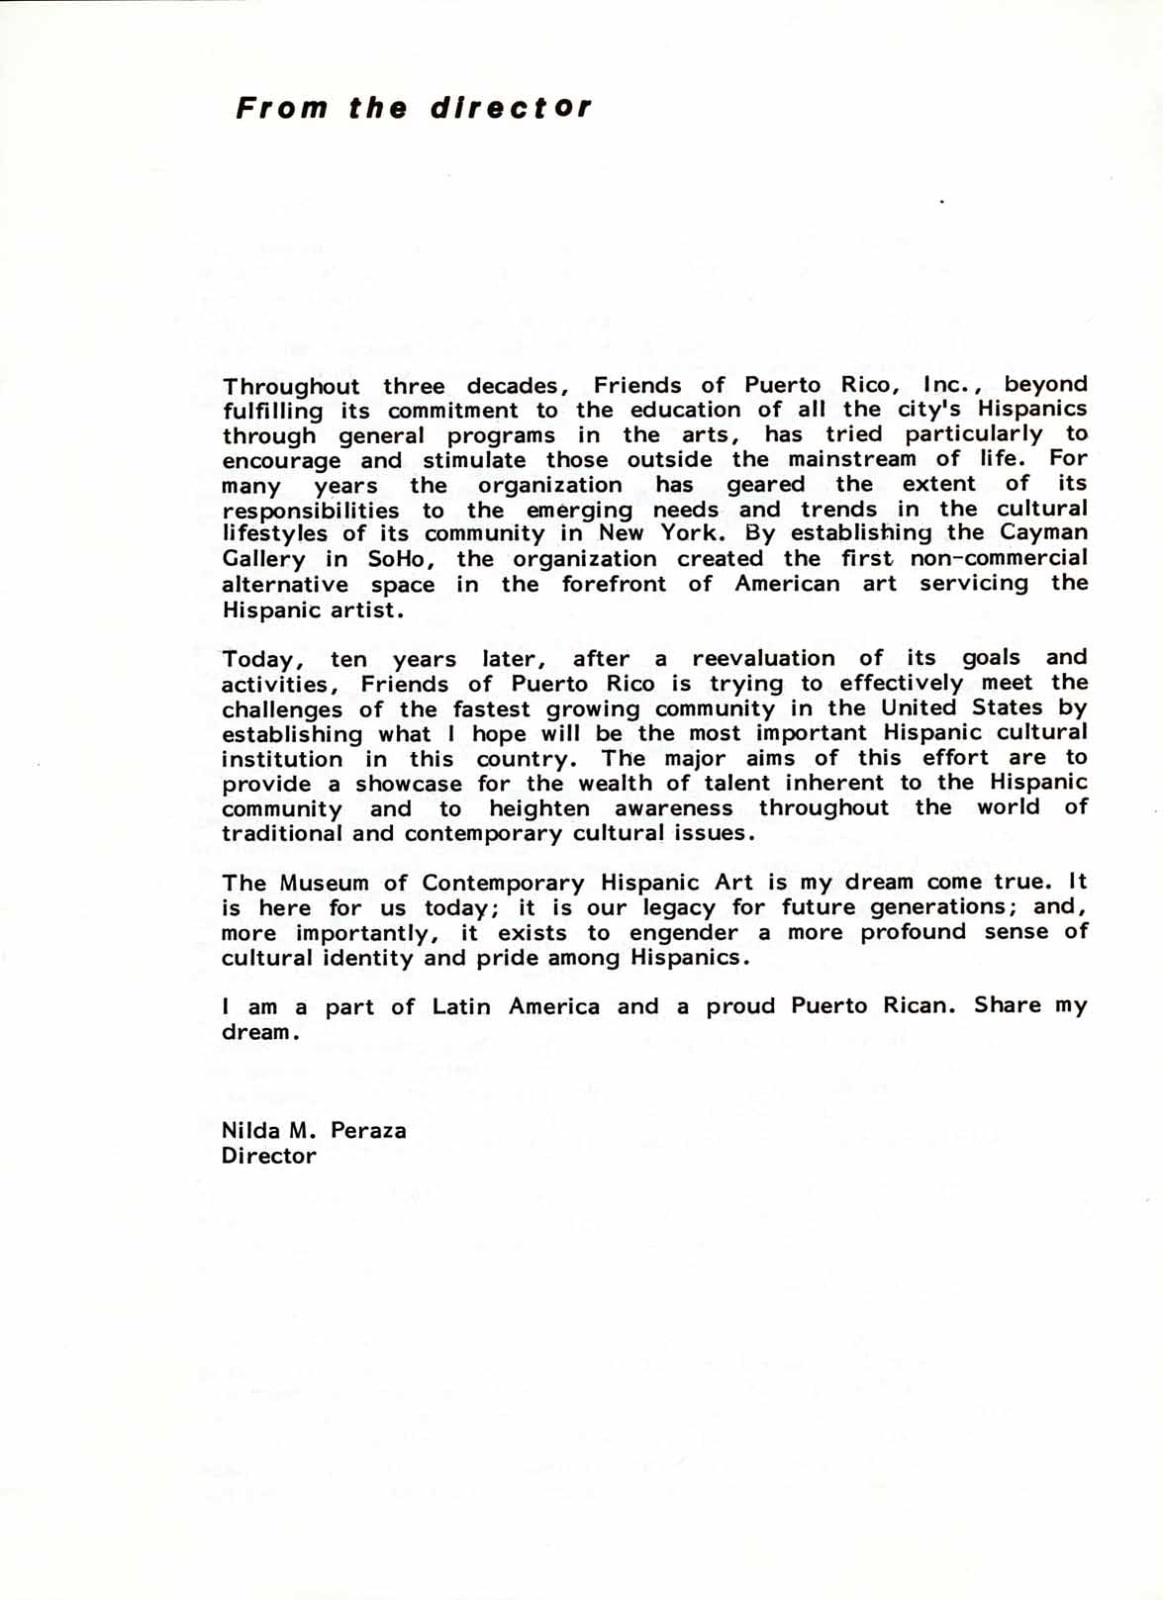 Musuem of Contemporary Hispanic Art (MoCHA) Inaguration Letter, Letter from then-Director Nilda M.Peraza, 1985